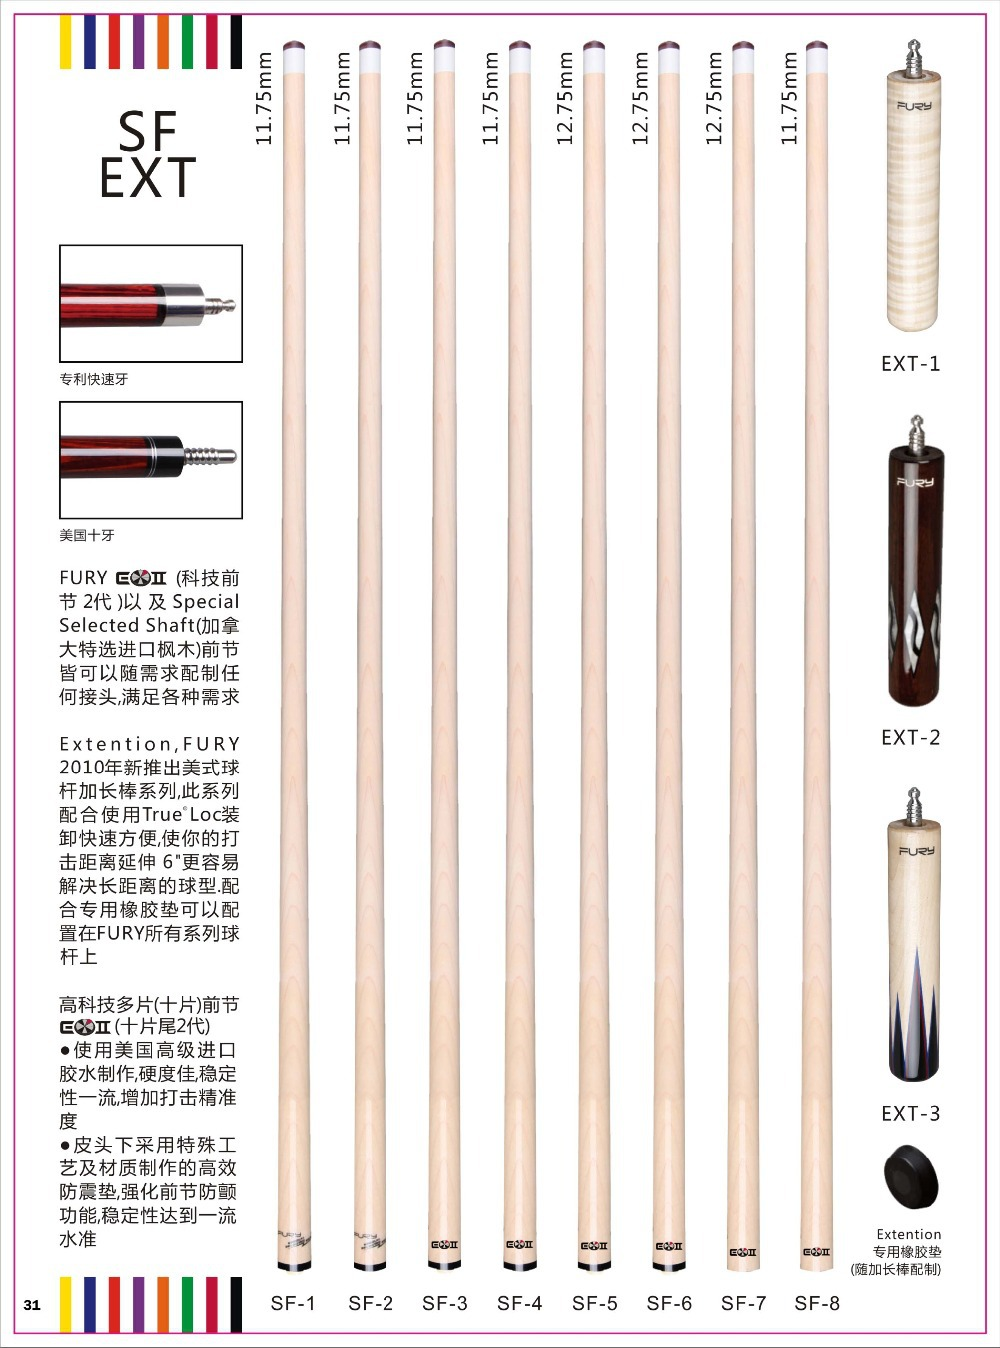 Pool cue Extra shaft 11.75 mm / 12.75 mm / Billiards shaft for Full all series 2017 poinos break pool cue punch